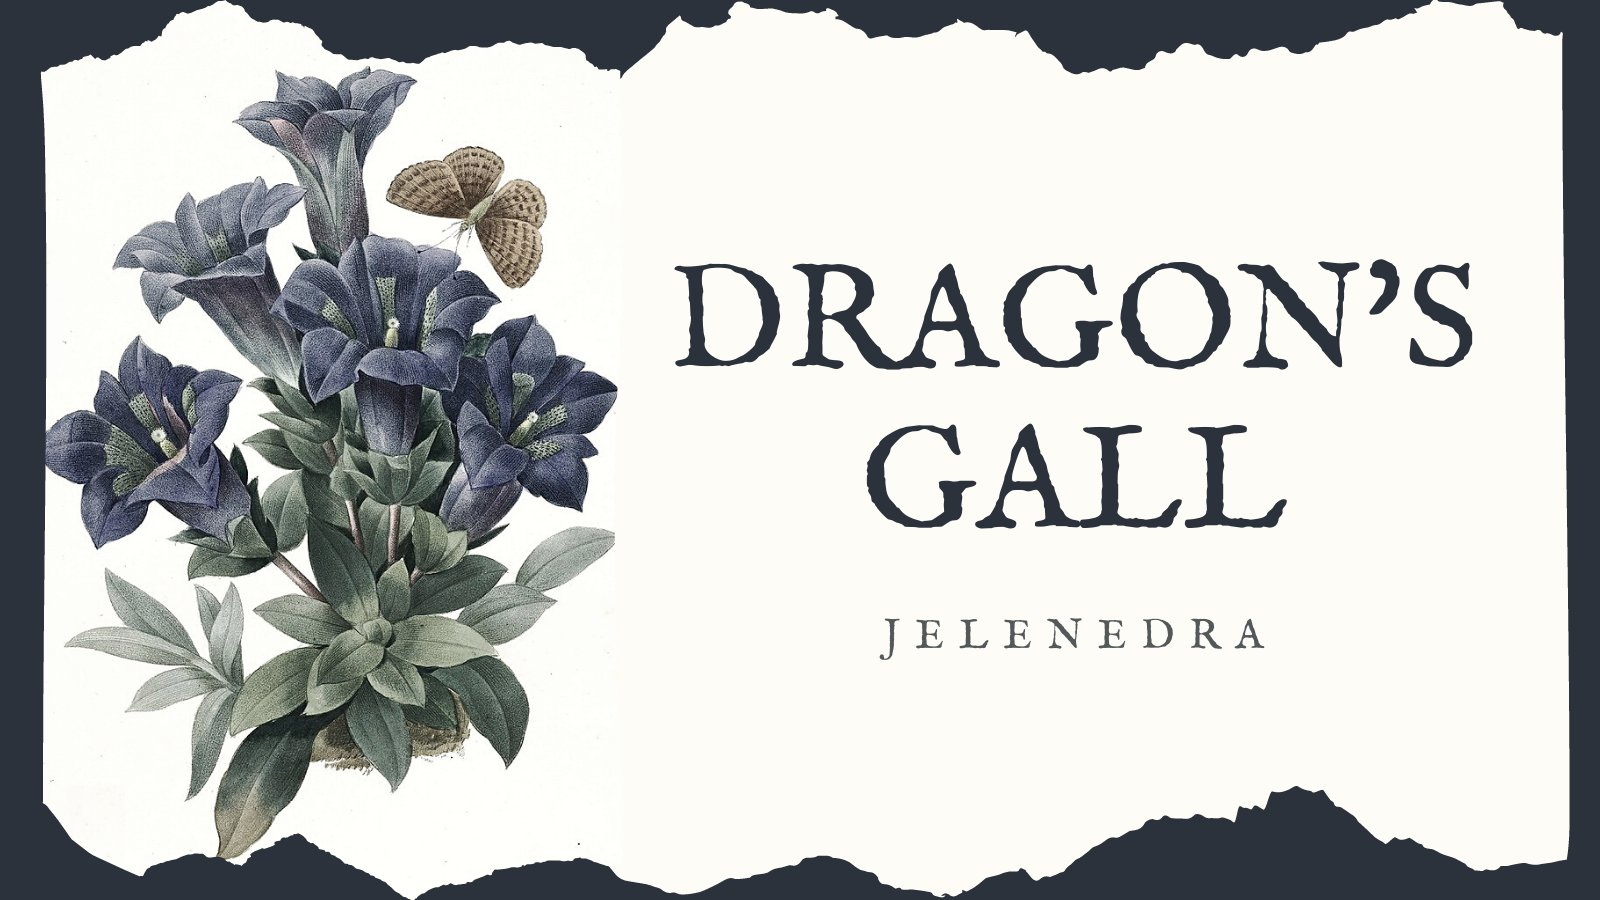 A banner showing an image of blue gentian flowers with a speckled brown moth flying among them, showing the title Dragon's Gall and the author's name Jelenedra on a pale cream coloured background. The banner was made by AO3 user ladyofrosefire.